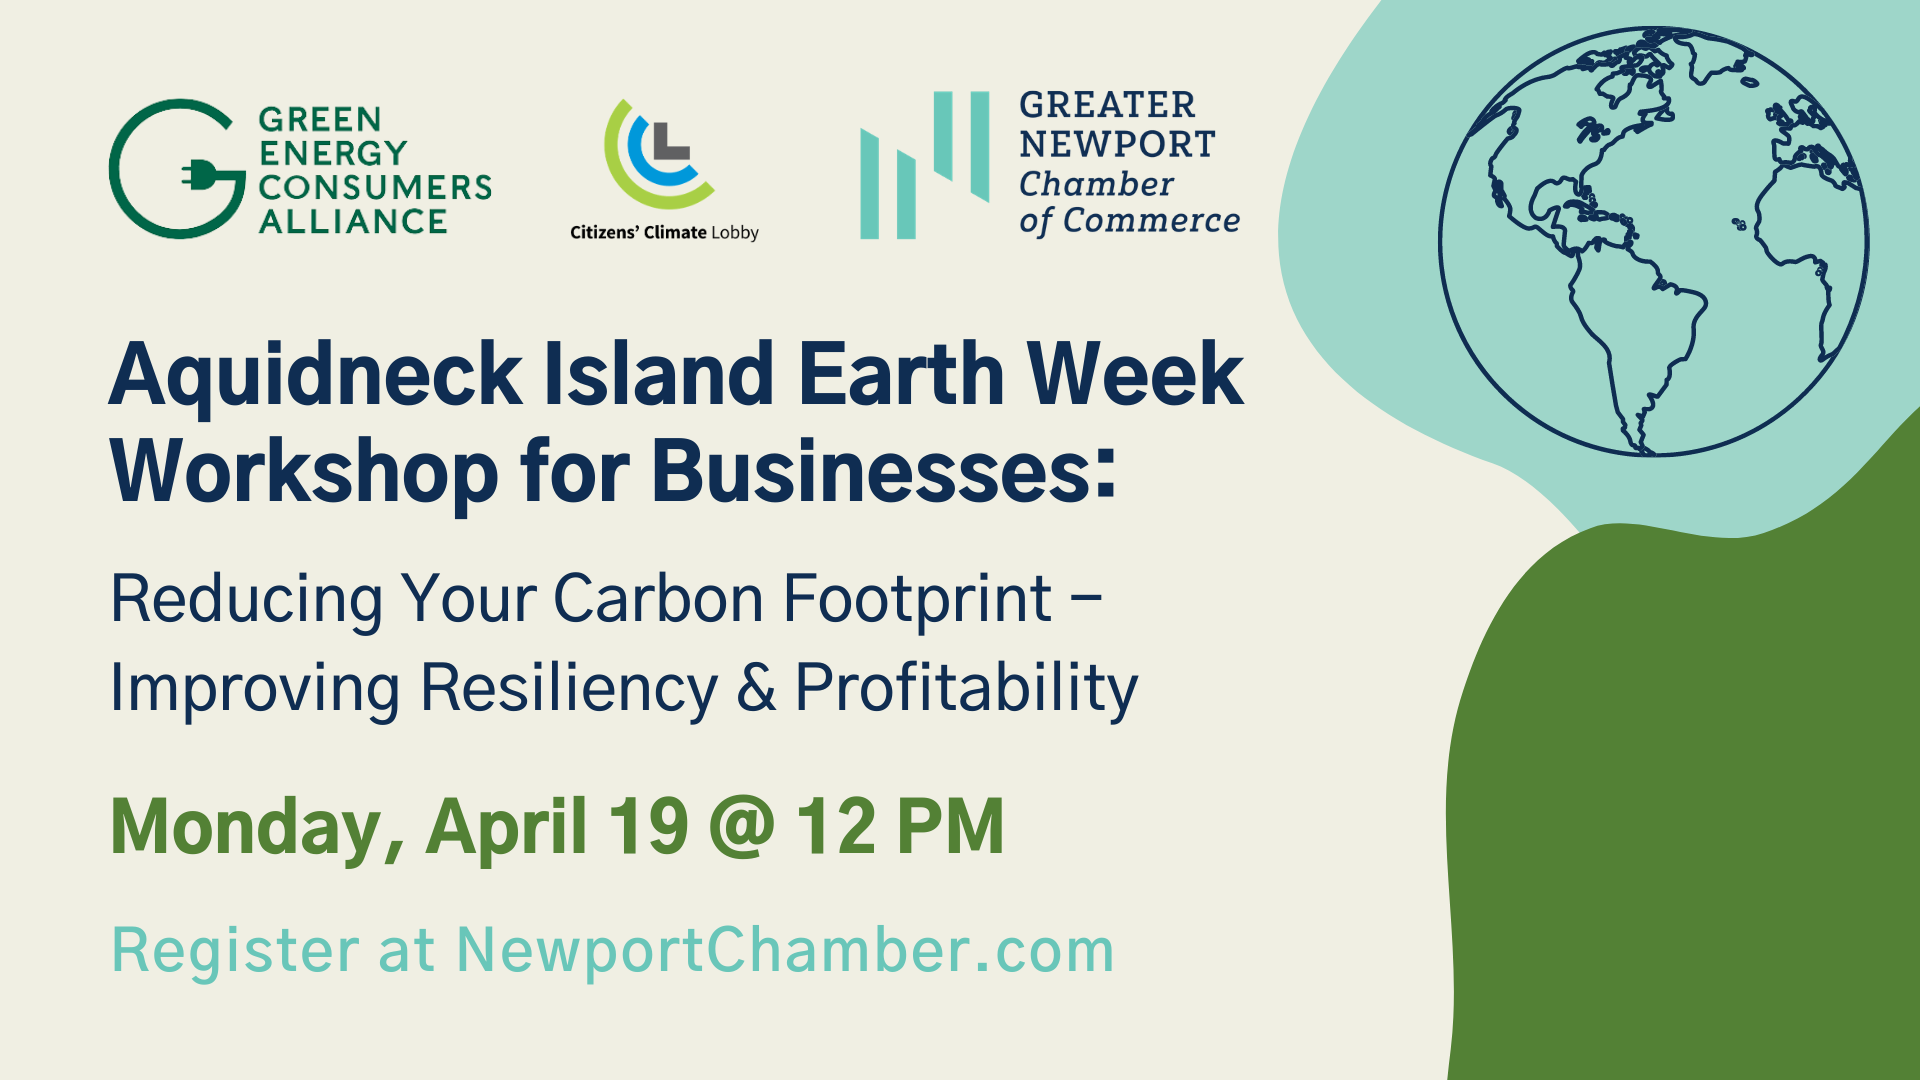 Image for Workshop for Businesses Reducing Your Carbon Footprint - Improving Resiliency & Profitability